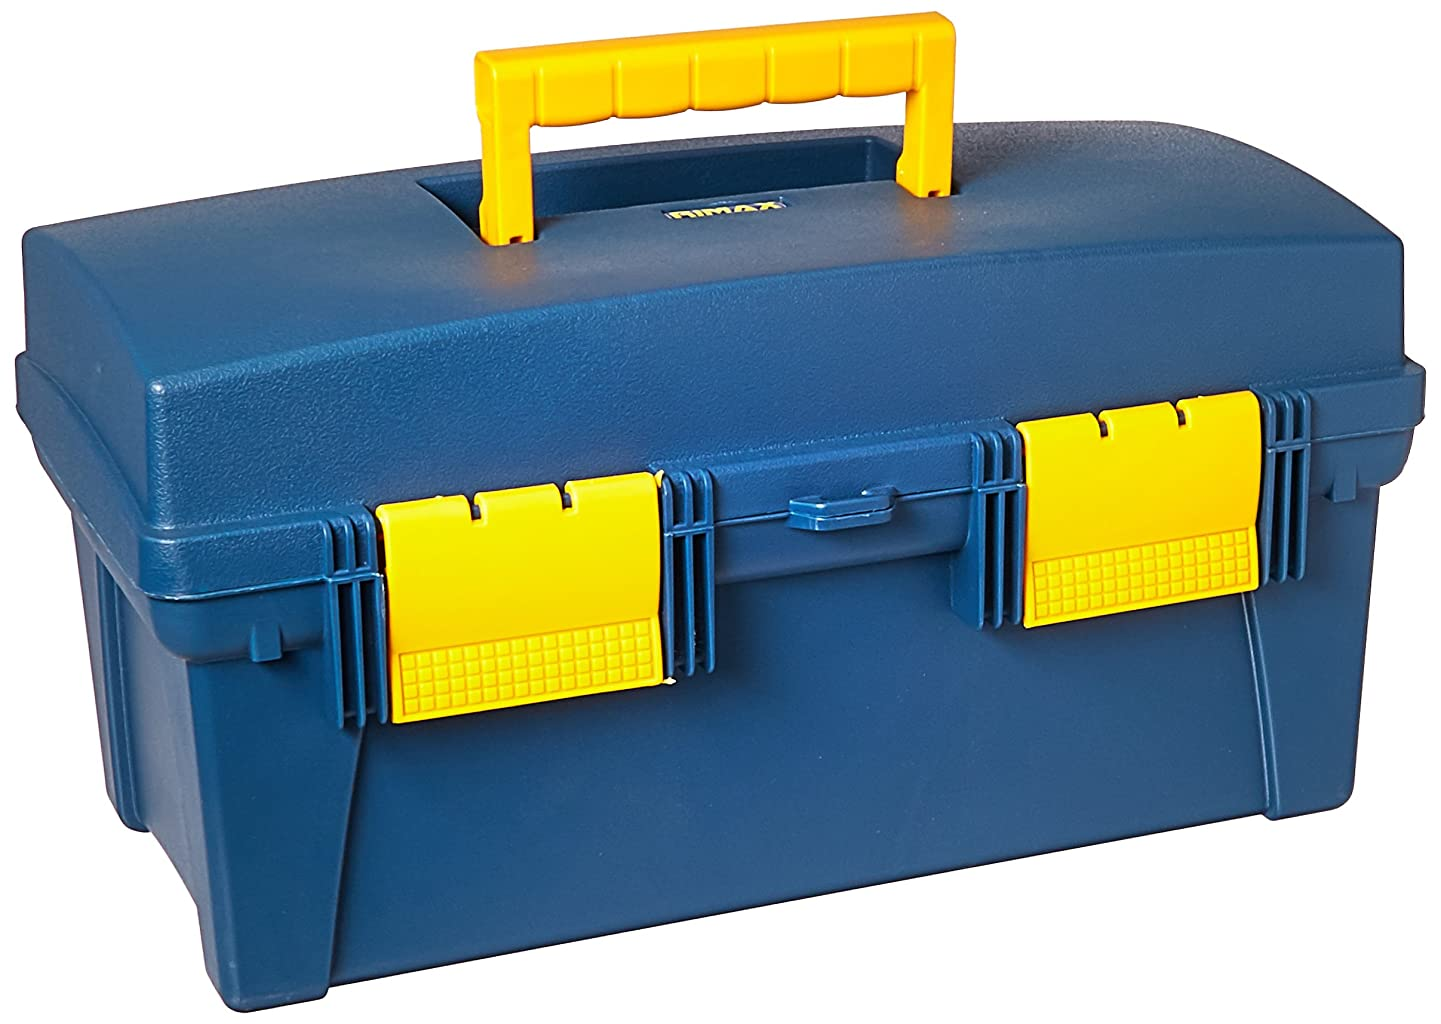 Pro Art 16-Inch by 8-1/2-Inch by 8-1/2-Inch Storage Box, Blue and Yellow